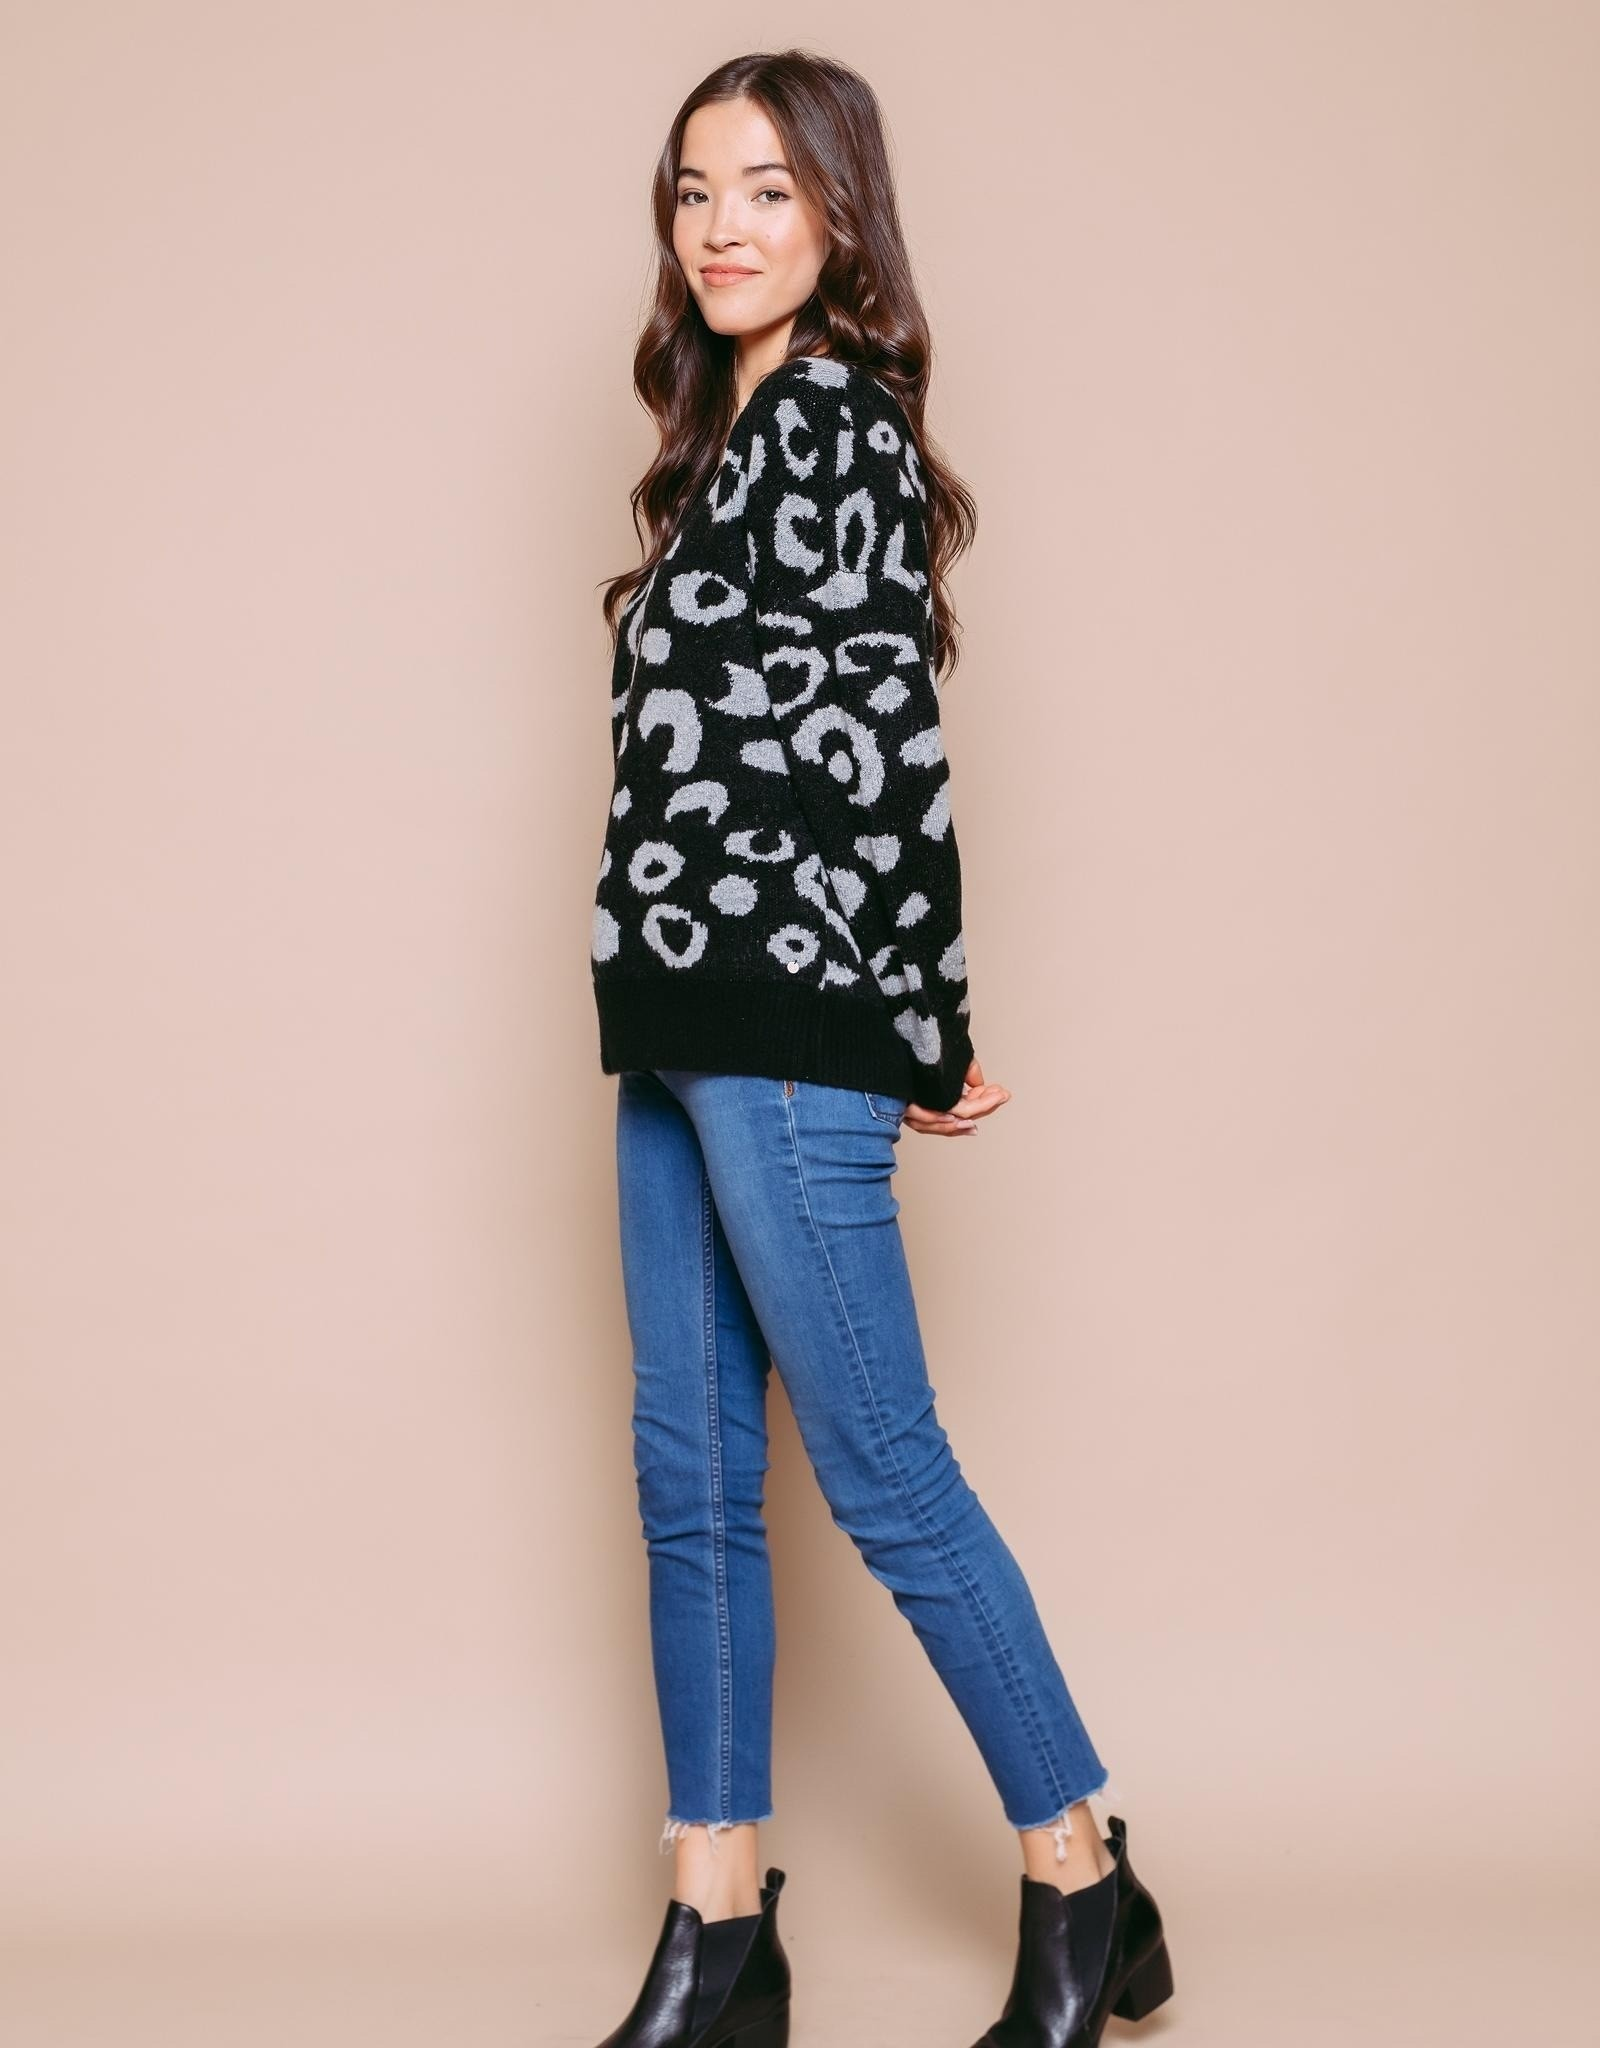 Orb Clothing Chrissy Pullover